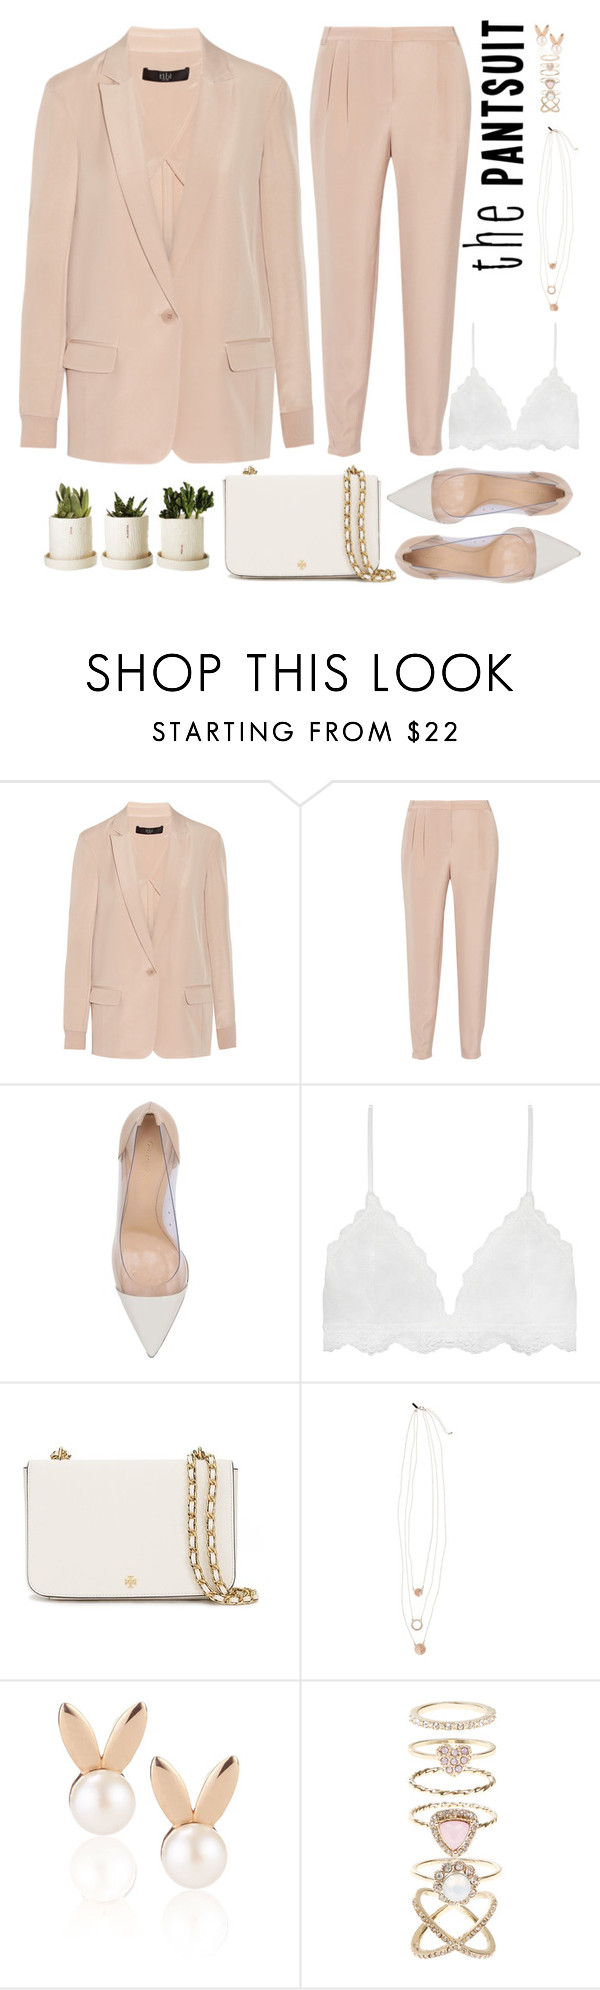 """""""Sweet pantsuit"""" by bmaroso ❤ liked on Polyvore featuring TIBI, Gianvito Rossi, Tory Burch, Topshop, Aamaya by priyanka, Accessorize, sweet, pastelpink and thepantsuit"""